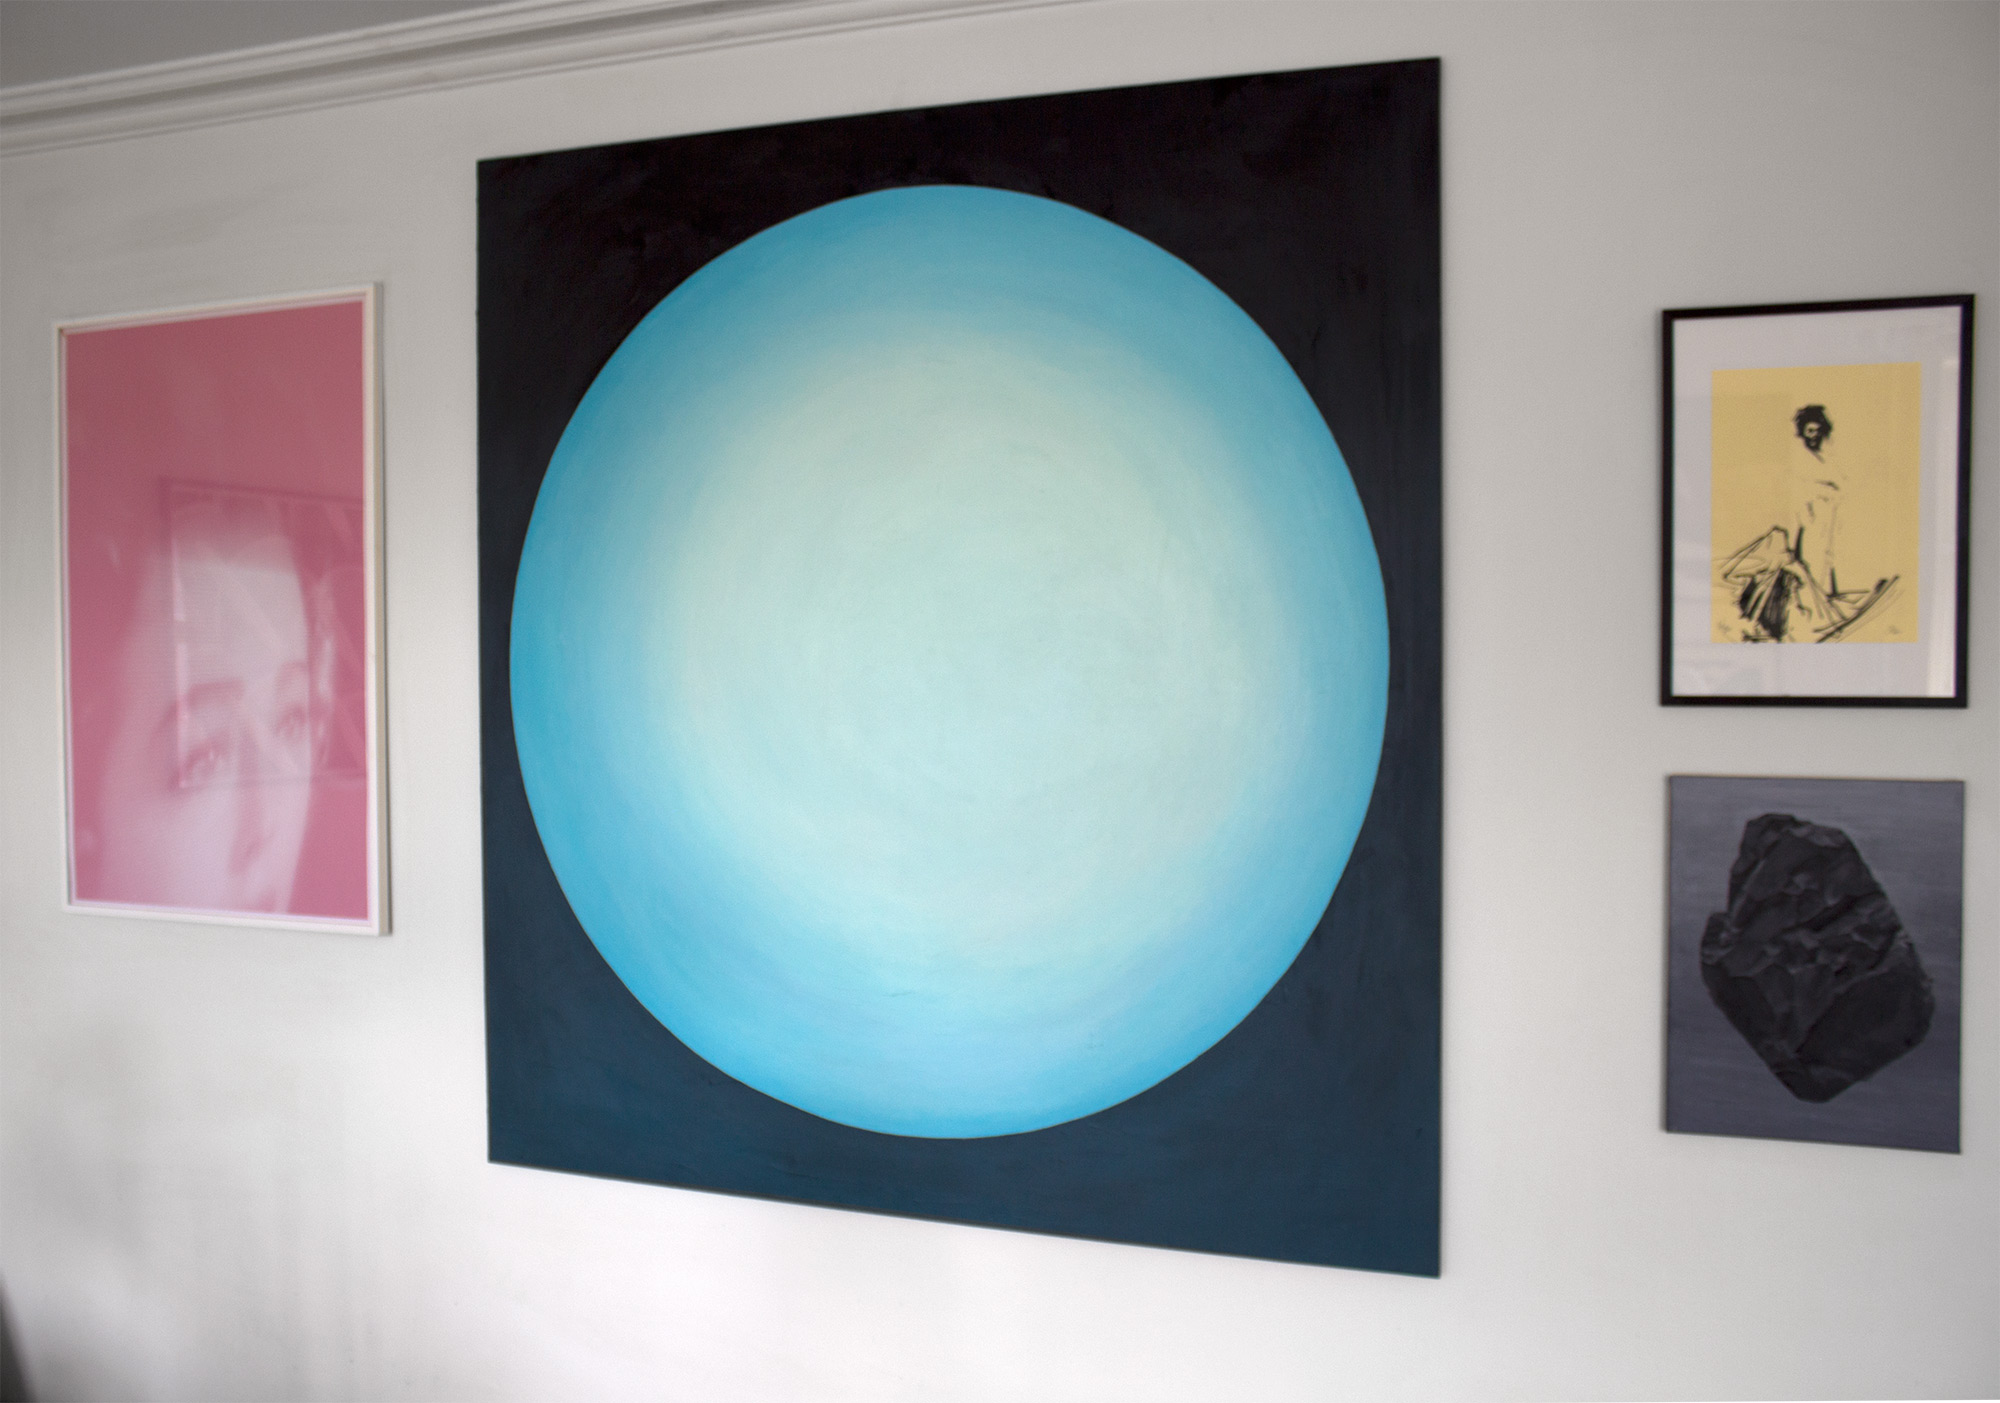 paintings, abstract, aesthetic, figurative, geometric, graphical, minimalistic, patterns, technology, blue, turquoise, acrylic, cotton-canvas, beautiful, conceptual, contemporary-art, danish, decorative, interior, interior-design, modern, modern-art, nordic, scandinavien, Buy original high quality art. Paintings, drawings, limited edition prints & posters by talented artists.